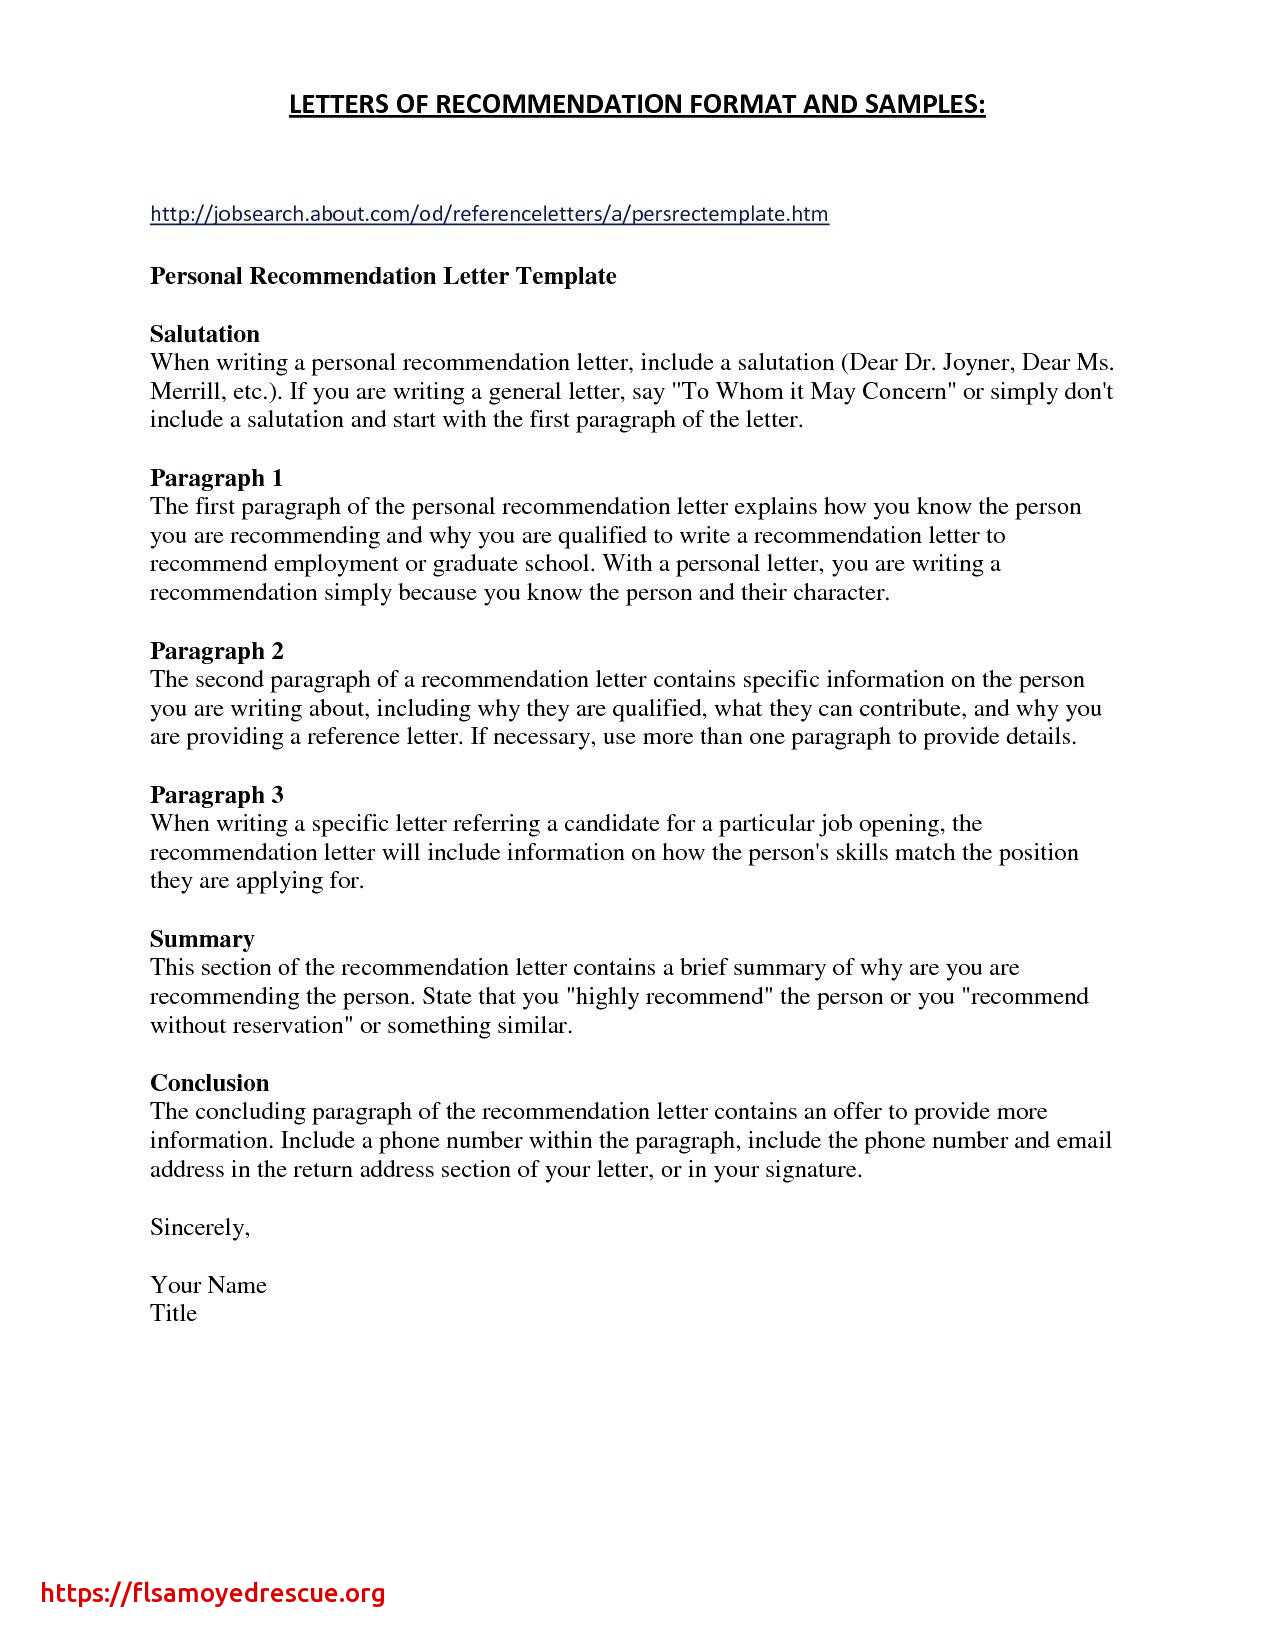 Letter Of Recommendation To Whom It May Concern Template from howtostepmom.com